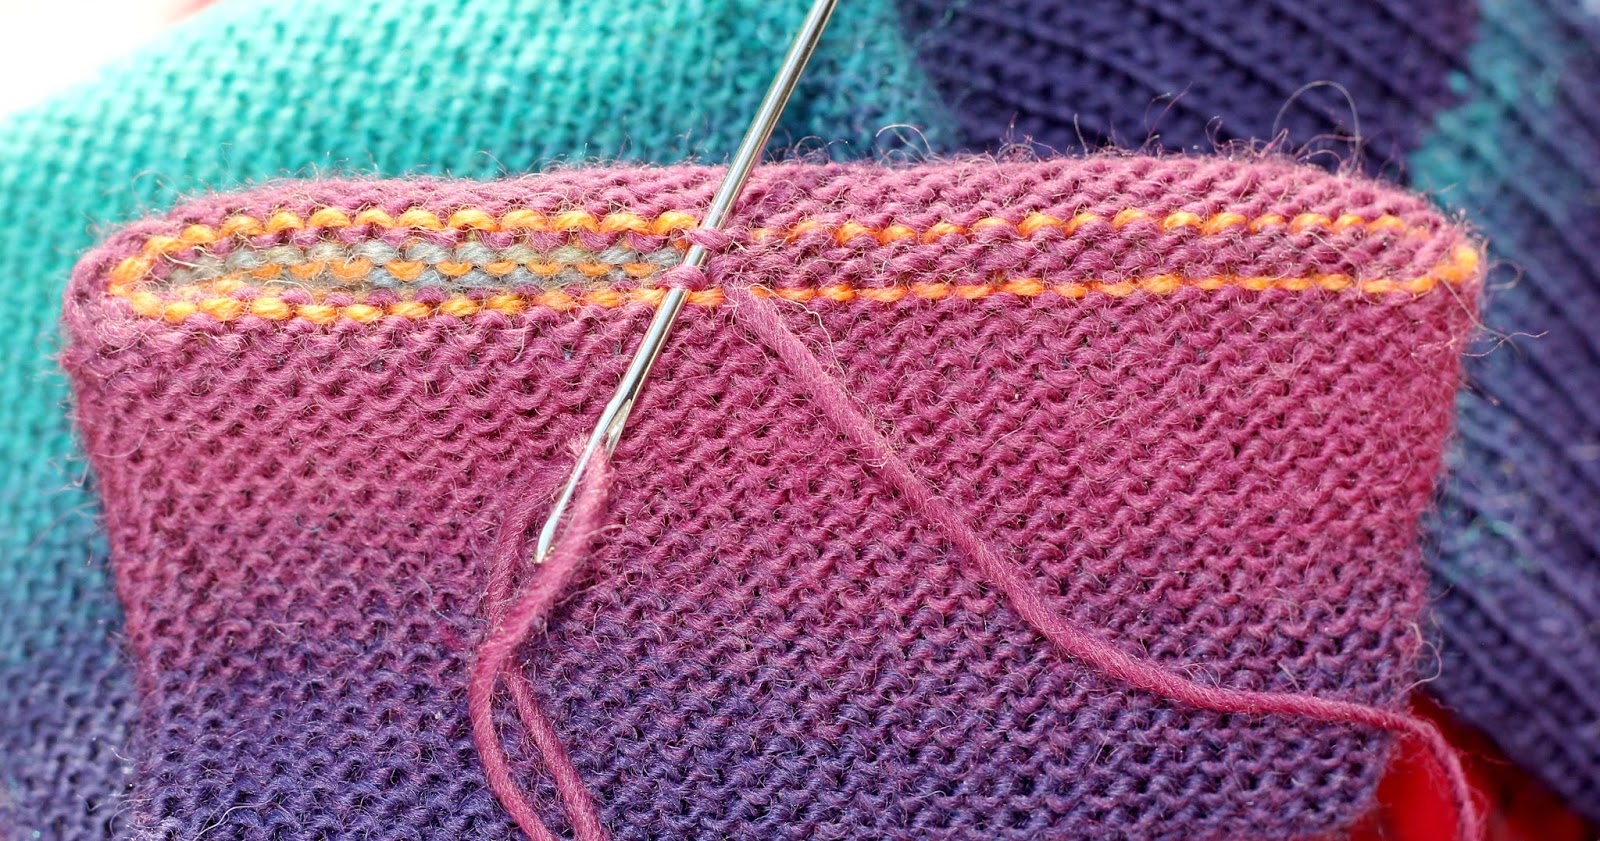 TOM MACHINE KNITTING GUY: Grafting Or Kitchener Stitch